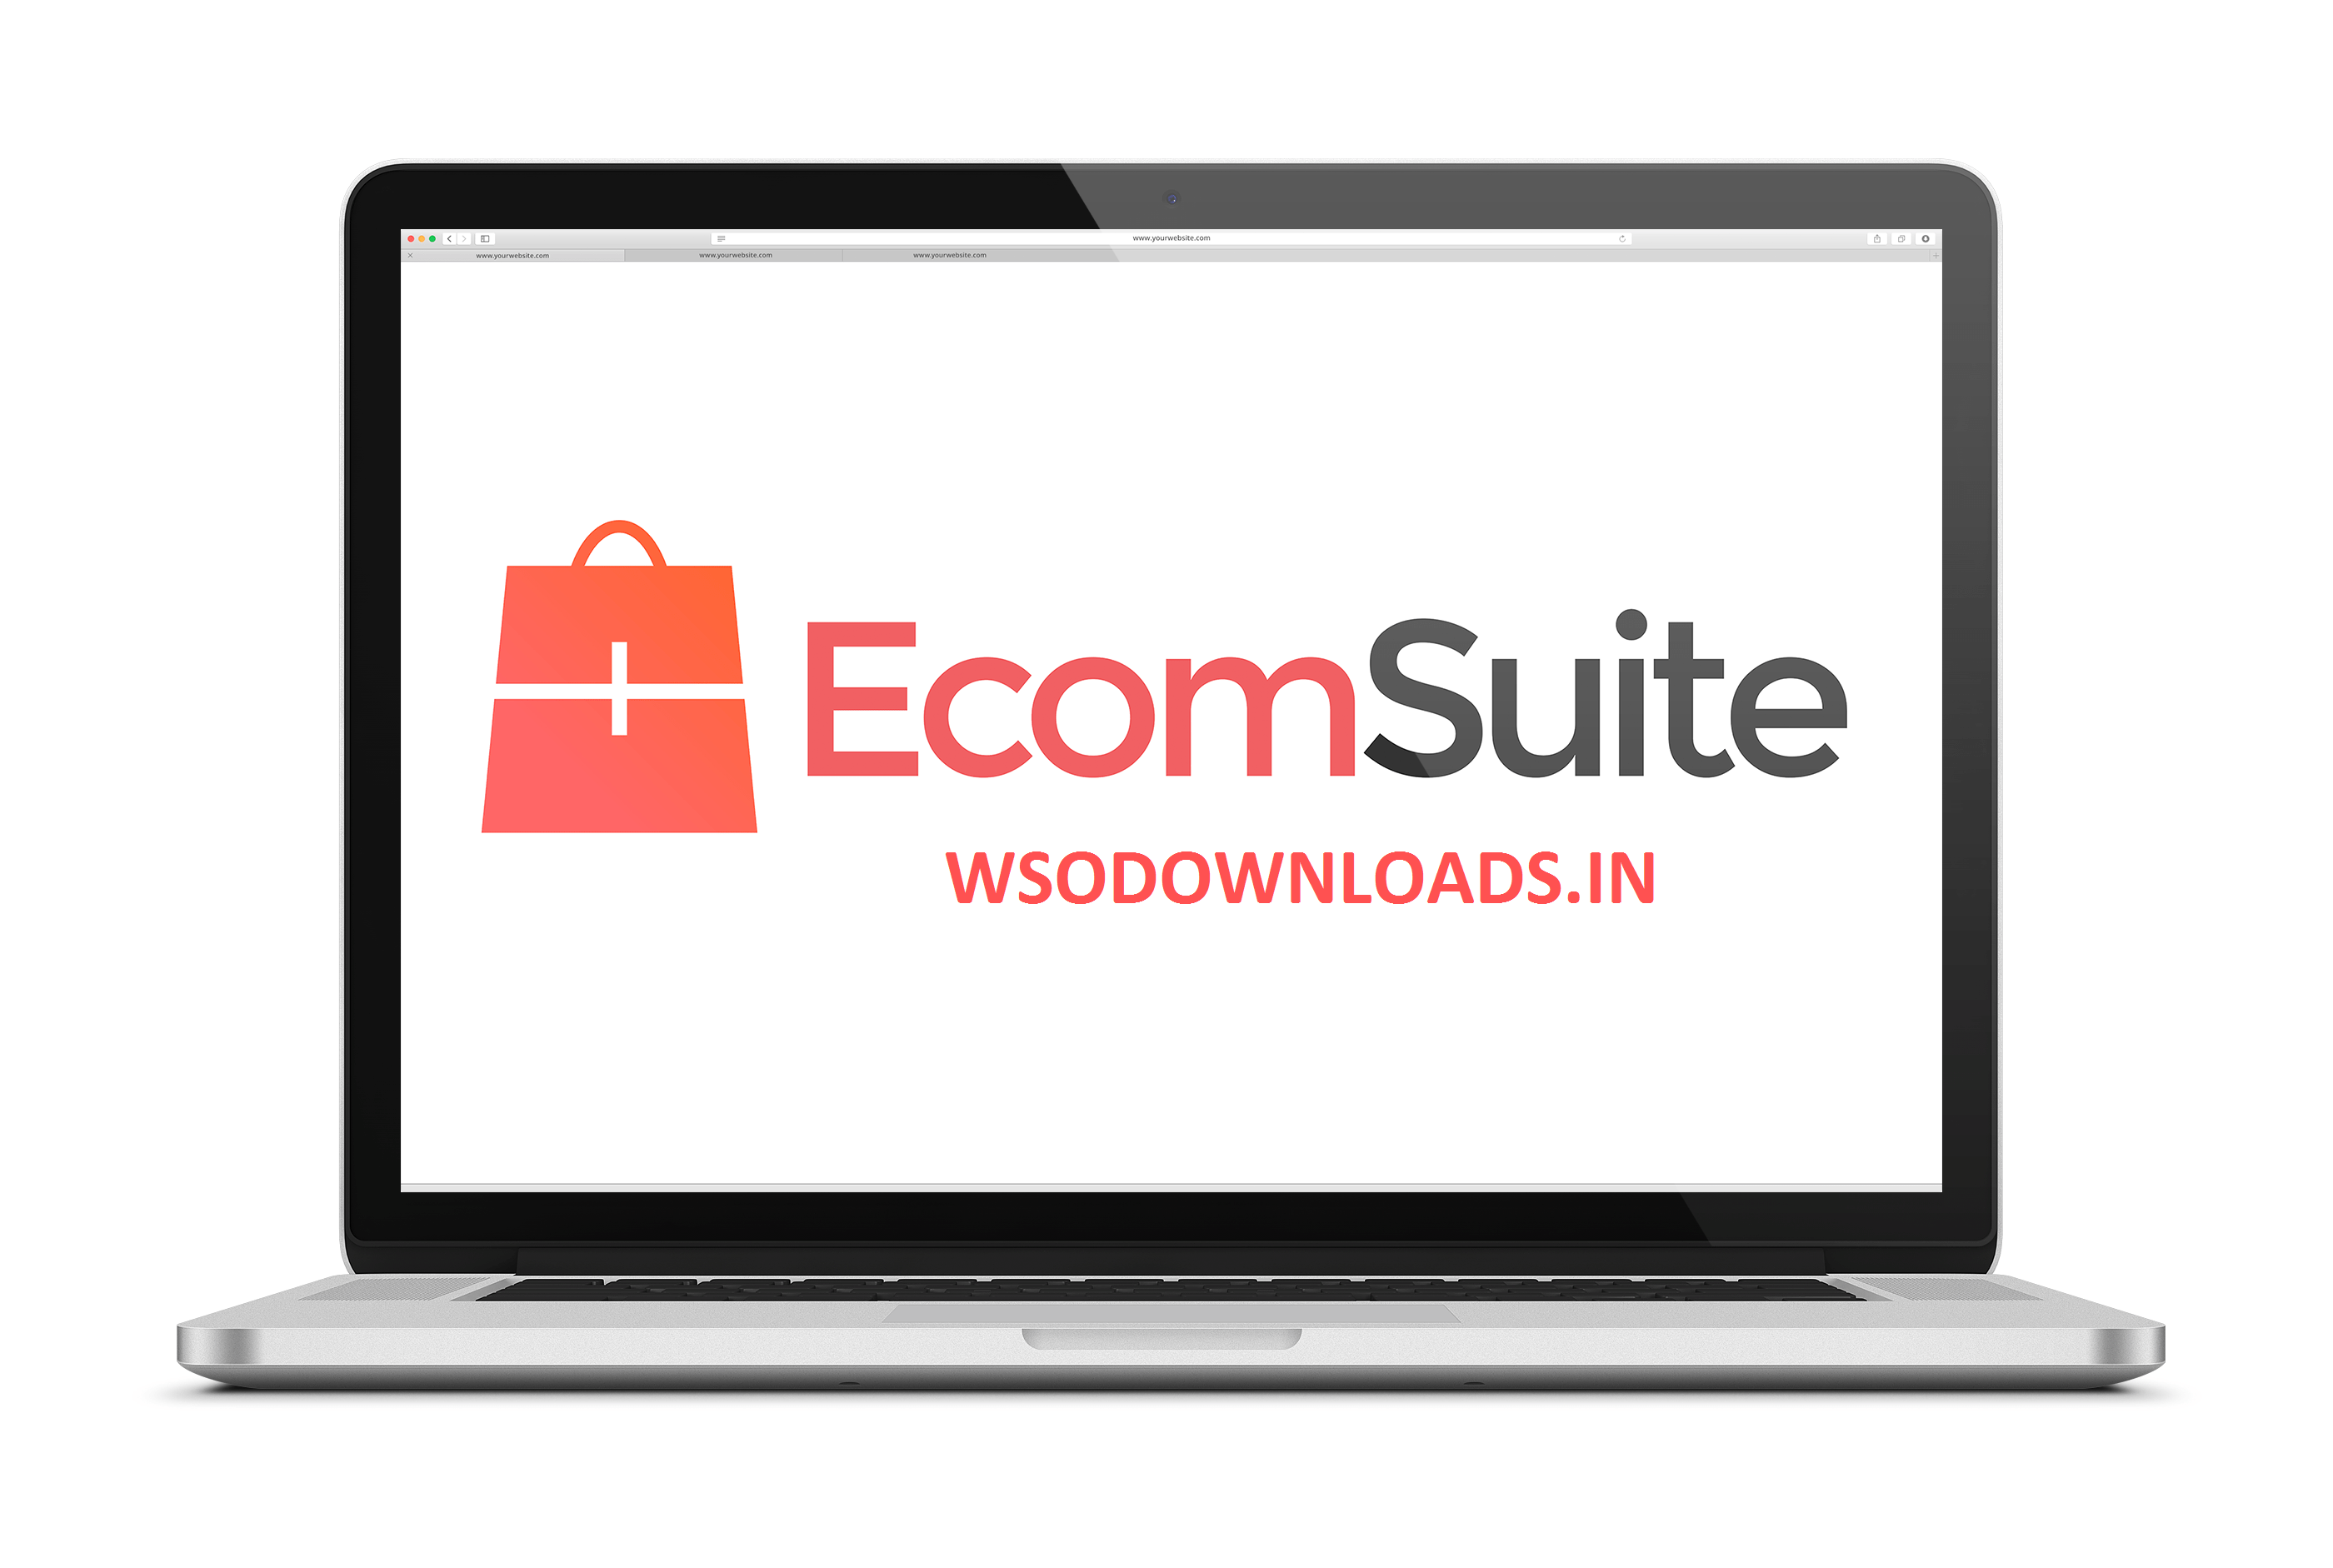 [GET] [ACCESS] ECOMSUITE Download